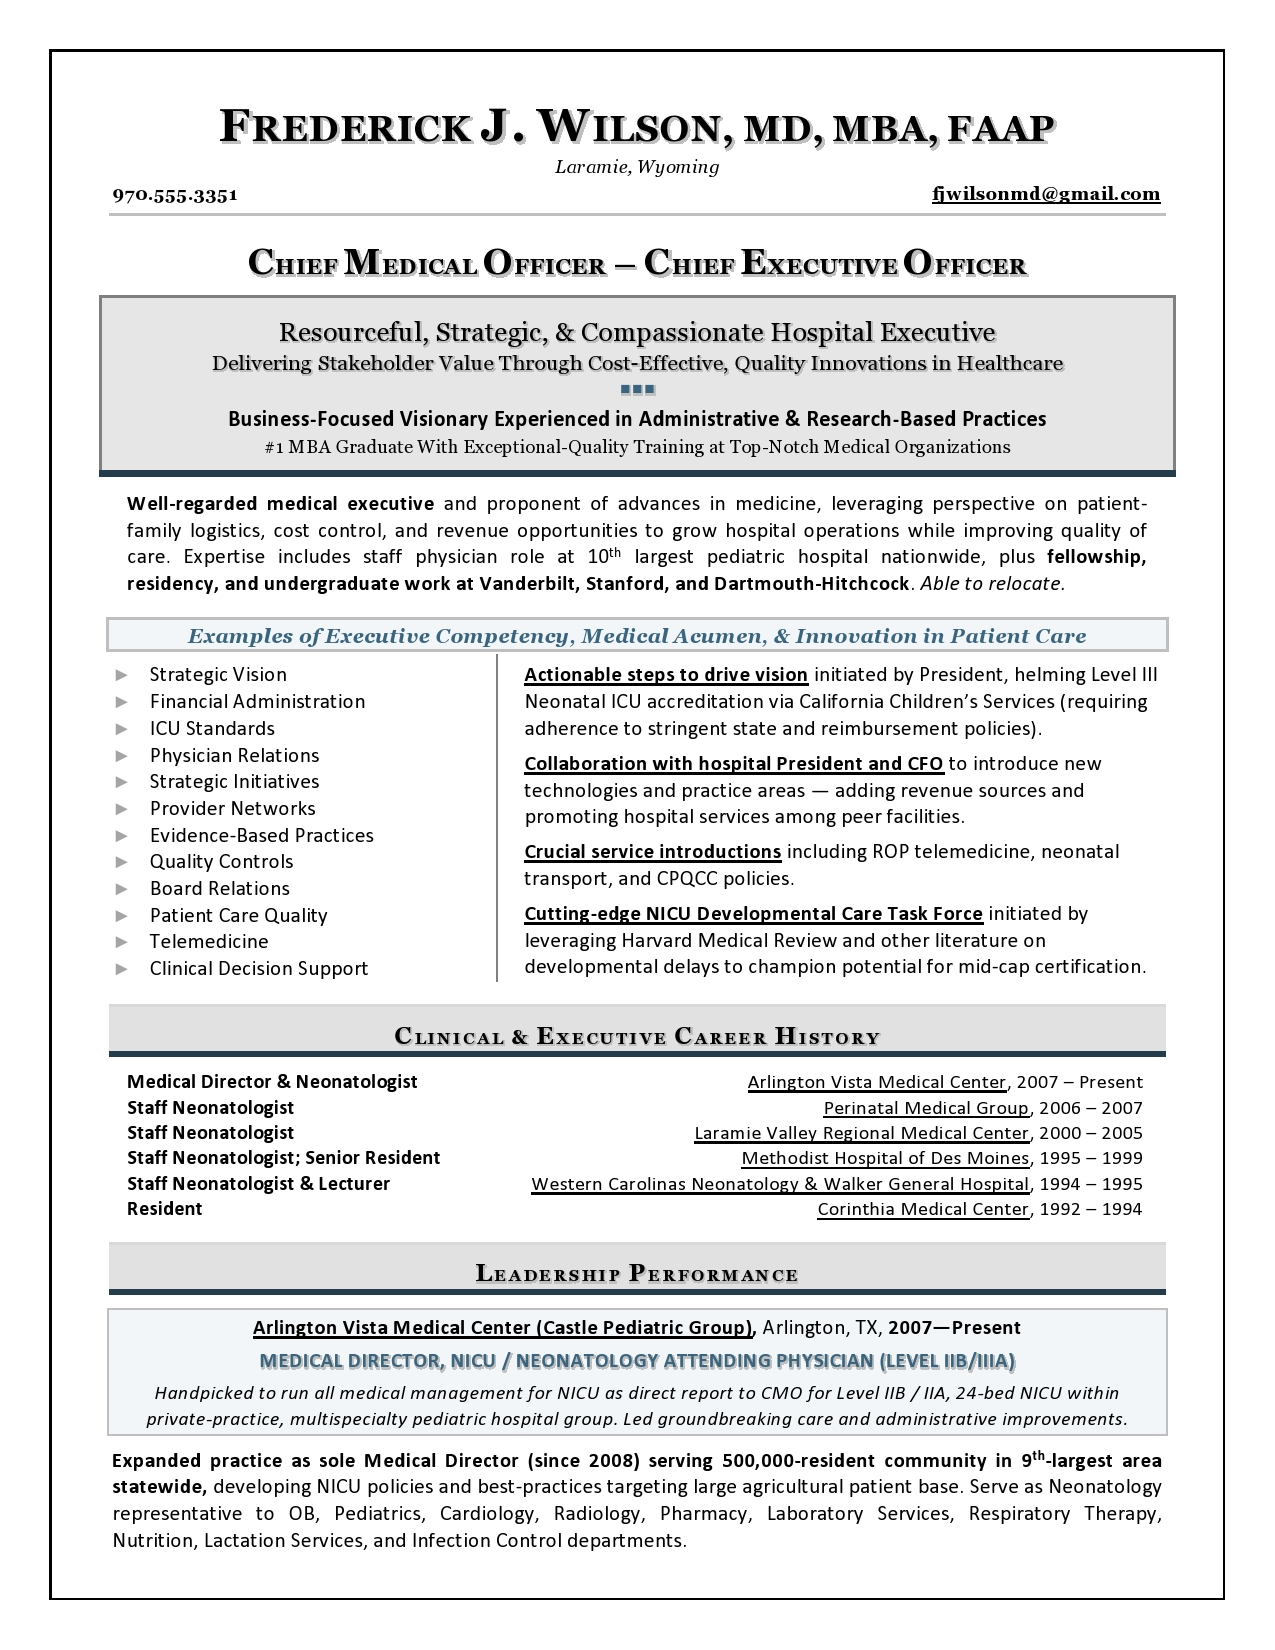 Physician Resumes Chief Medical Officer Sample Resume Executive Resume Writer For